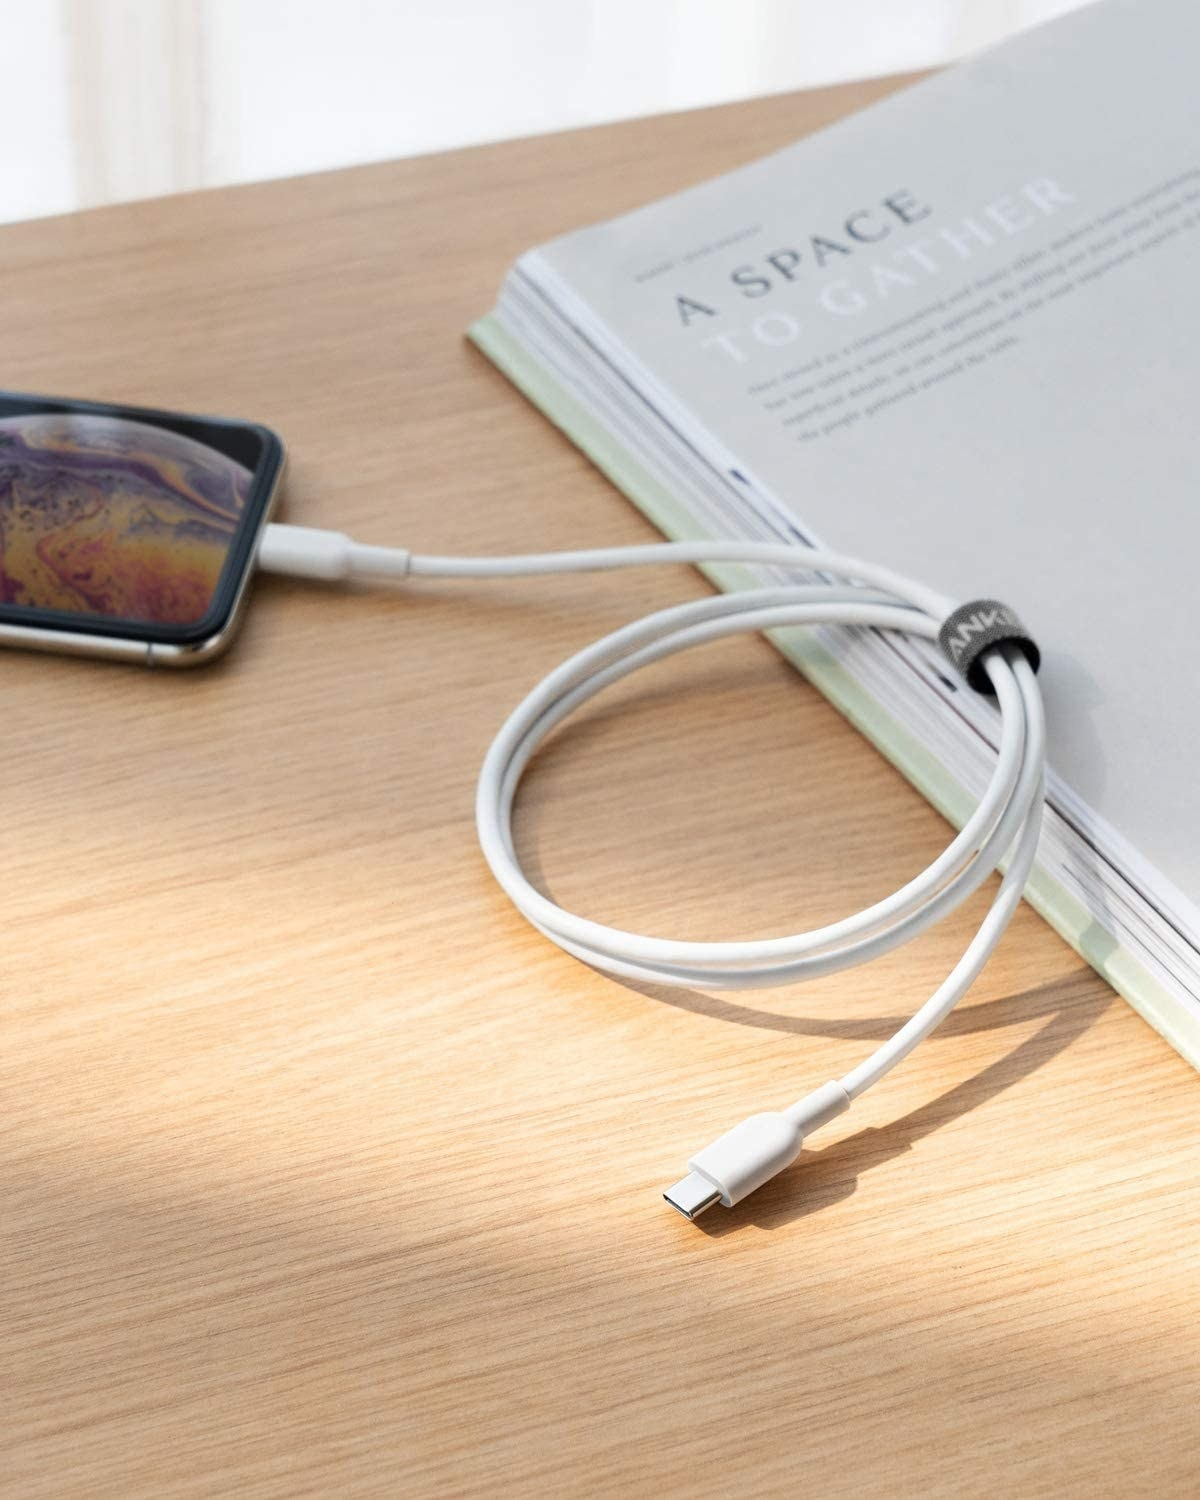 A charger plugged into a smart phone